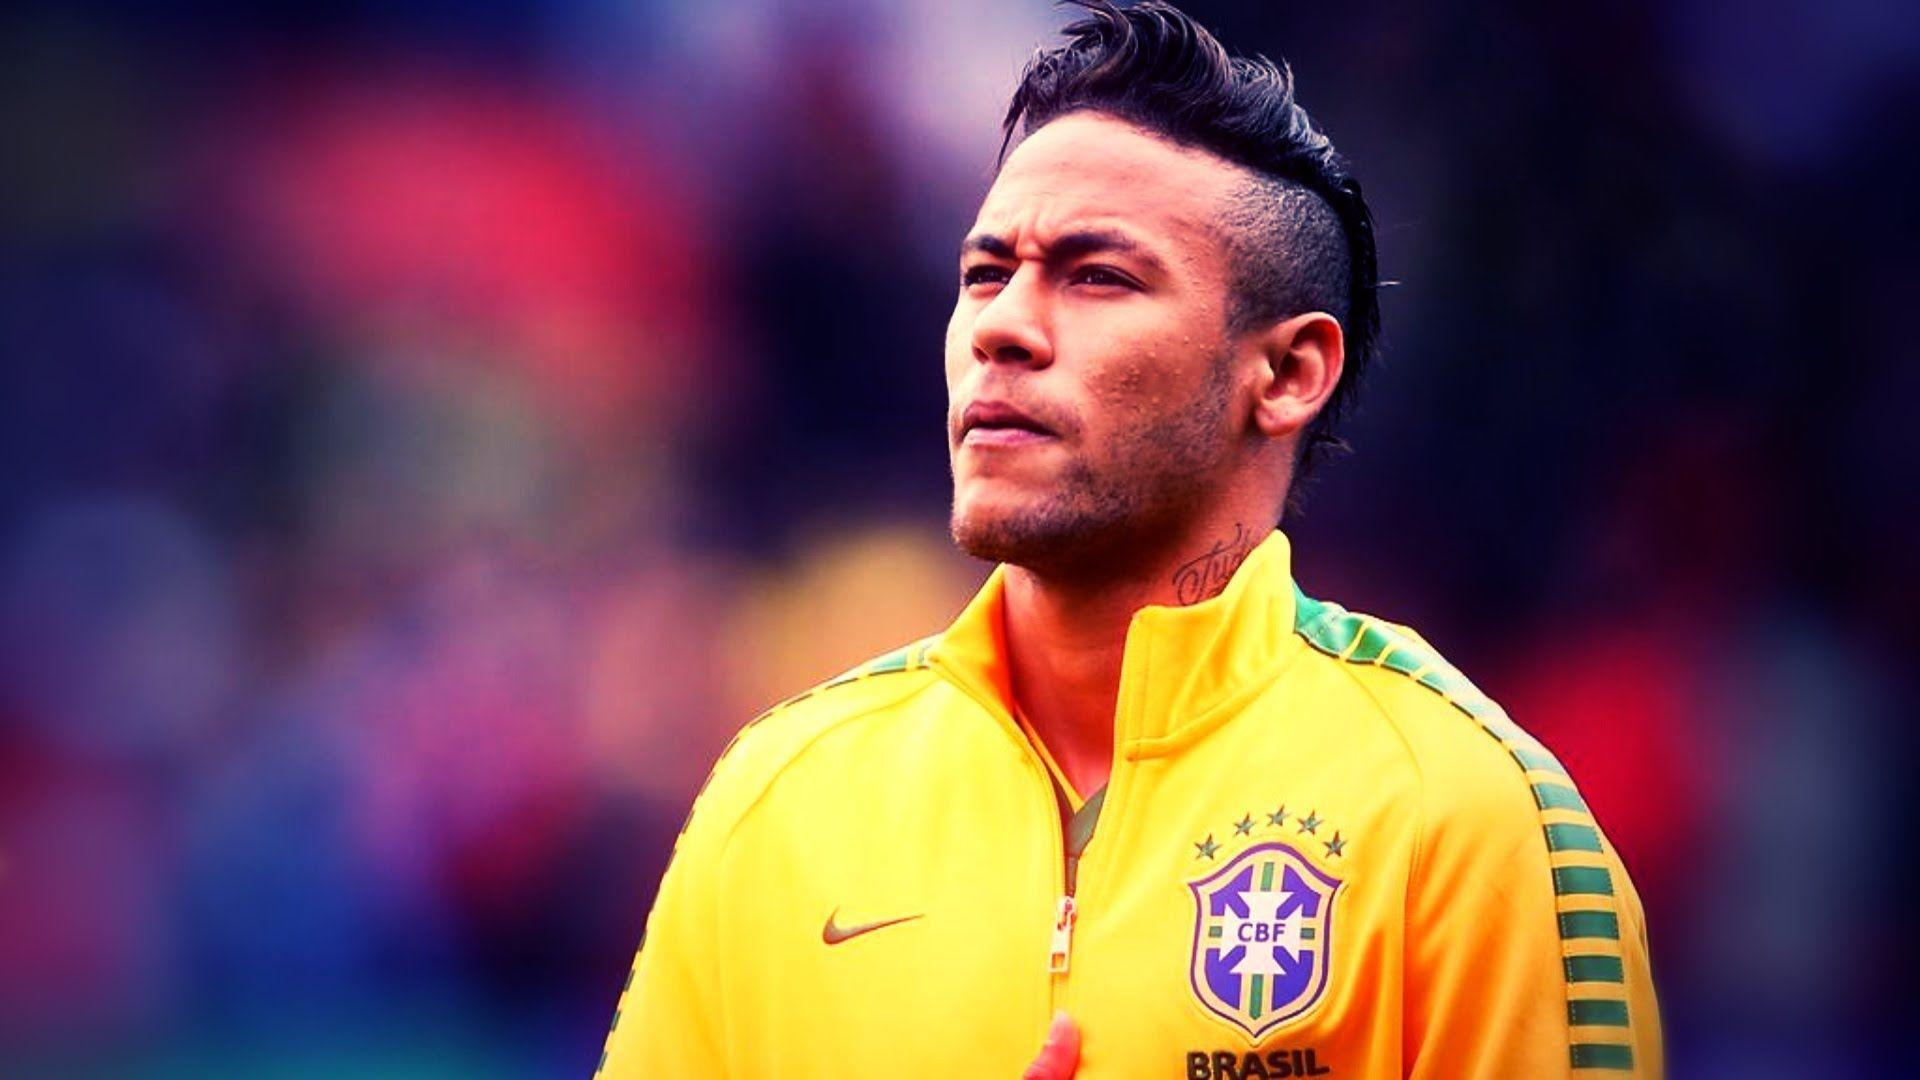 Neymar Wallpapers 2017 HD - Wallpaper Cave